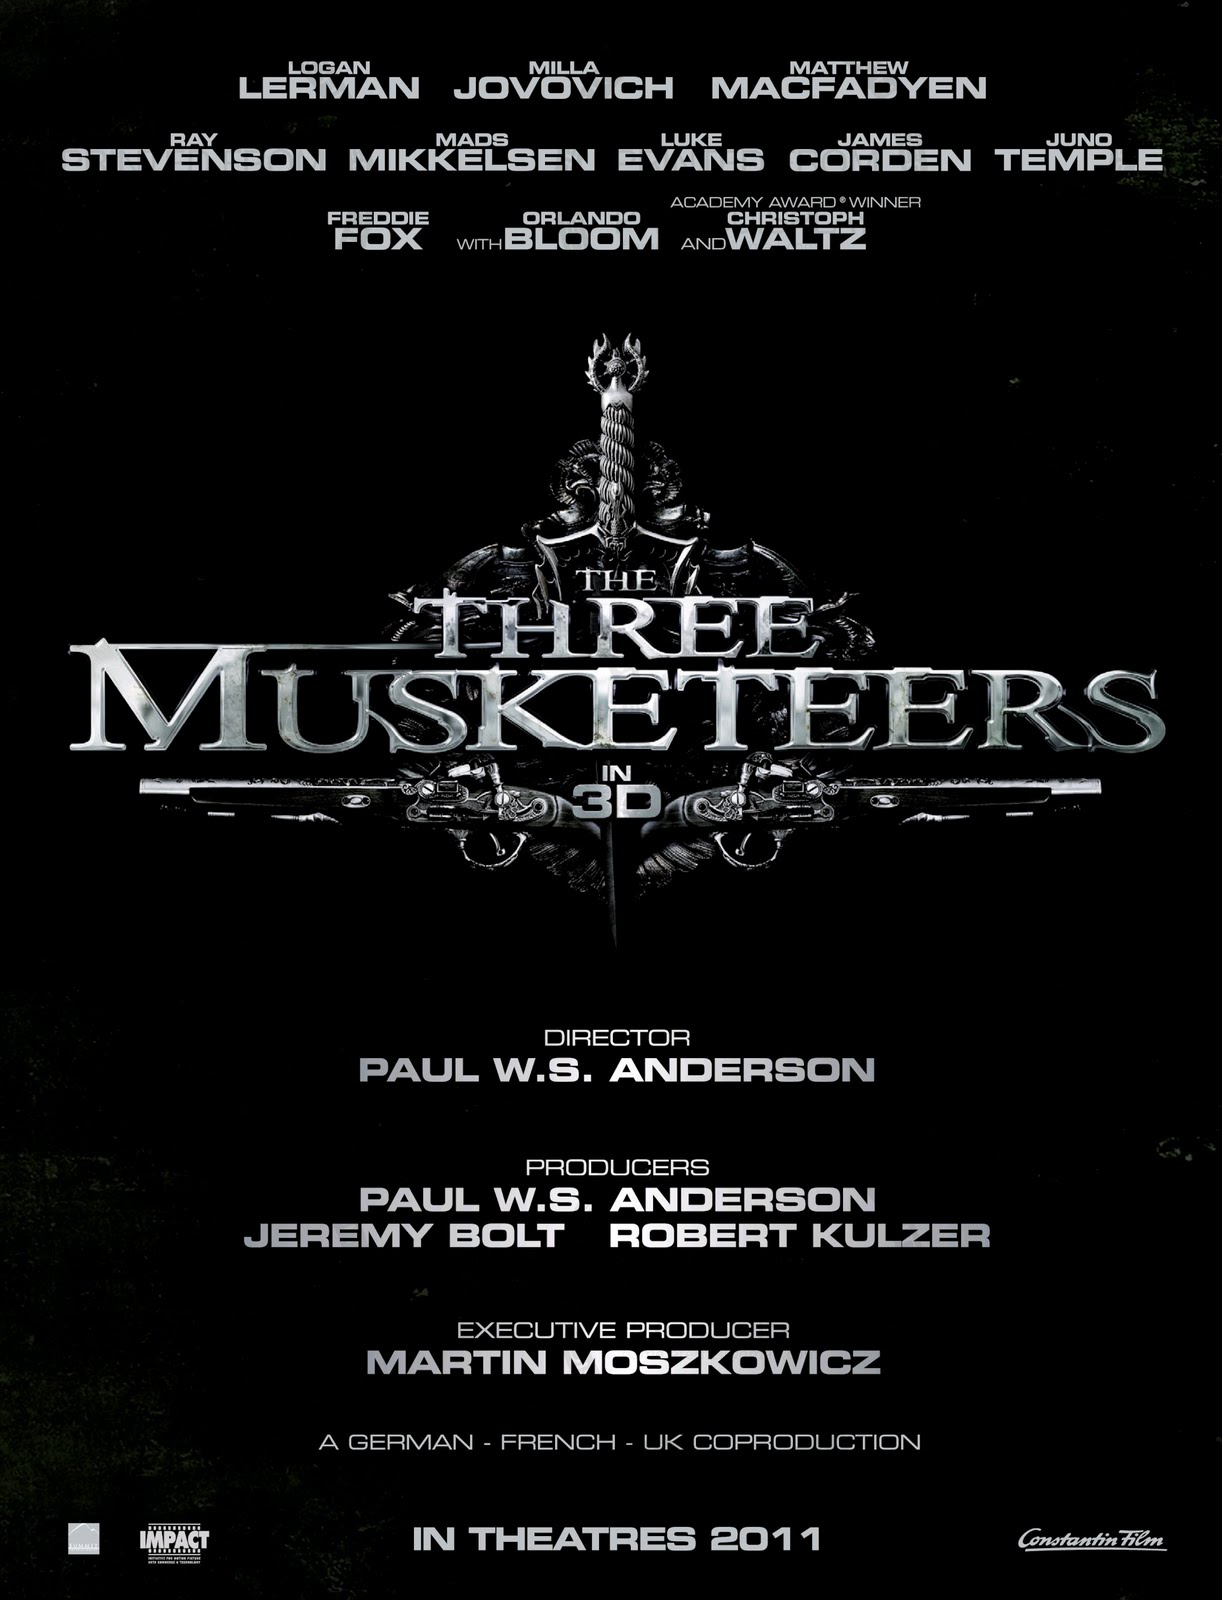 http://2.bp.blogspot.com/_ZH49orvYrMc/THvEOSGXduI/AAAAAAAAC6s/BtGOdnB6sWw/s1600/Three_Musketeers_Movie.jpg